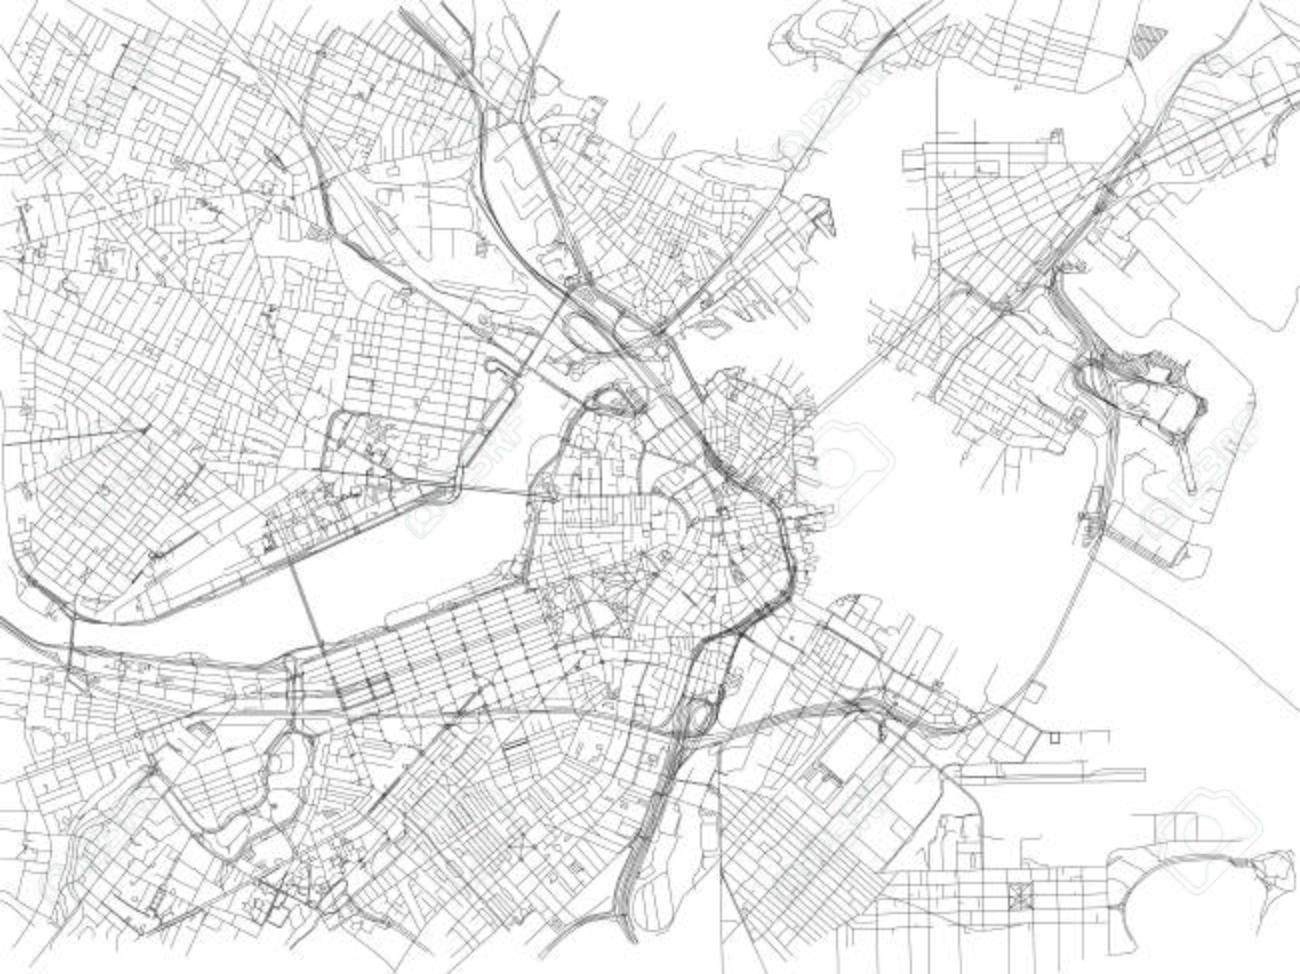 Streets of Boston, city map, Machusetts, United States. Street.. on city planning, city of milan ga, city of lake village arkansas, city of audubon iowa, city road, city of oregon wisconsin, city of galva il, city of potwin kansas, city intersection, city of hamilton michigan, city of arcadia fl, city drawing, city of austin etj, city street, city neighborhood, city of newburgh ny, city of sandpoint idaho, city restaurants, city diagram, city of alexandria louisiana,